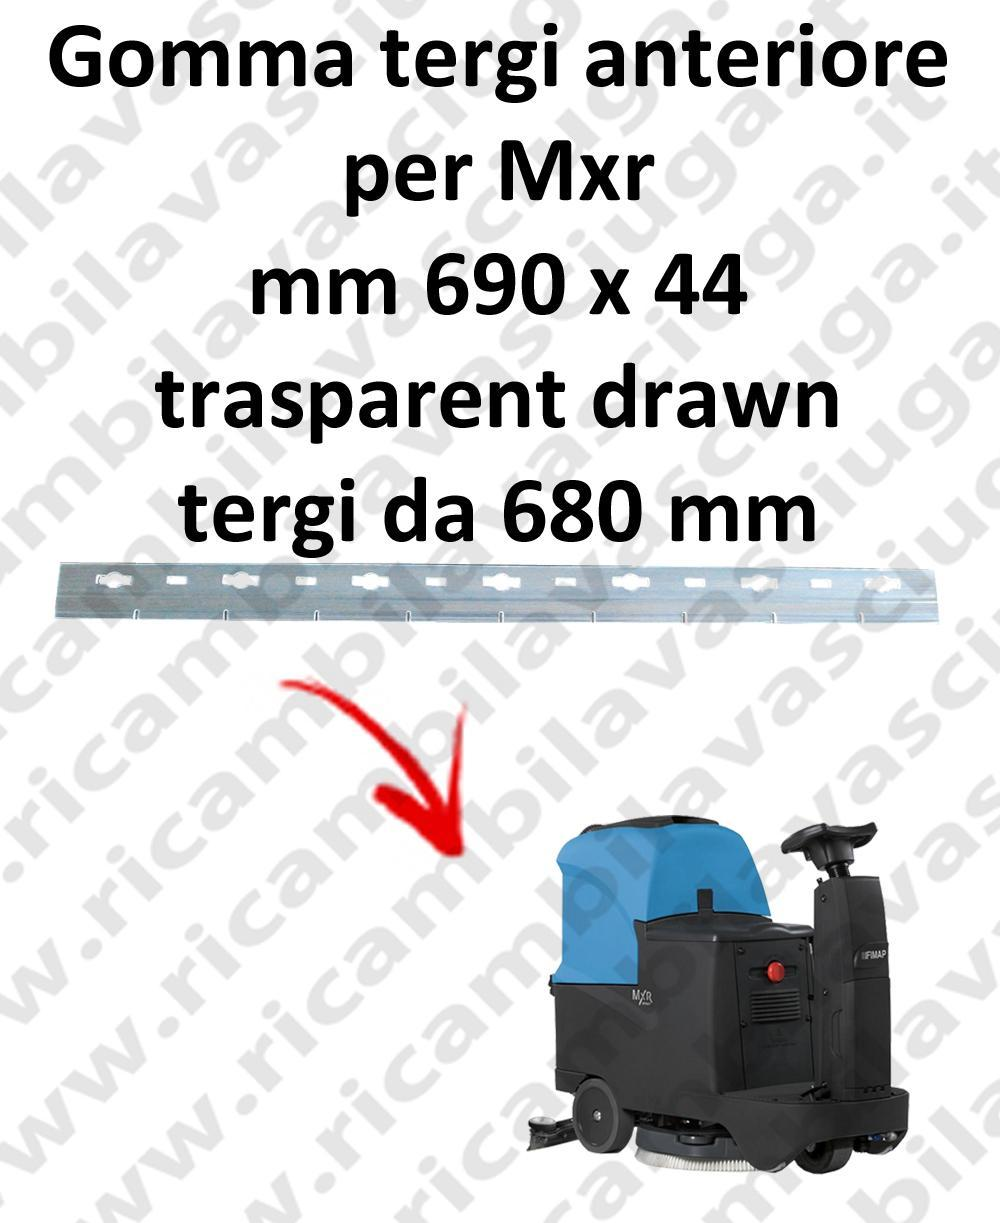 Mxr Front Squeegee rubber for FIMAP  accessories, reaplacement, spare parts,o scrubber dryer squeegee